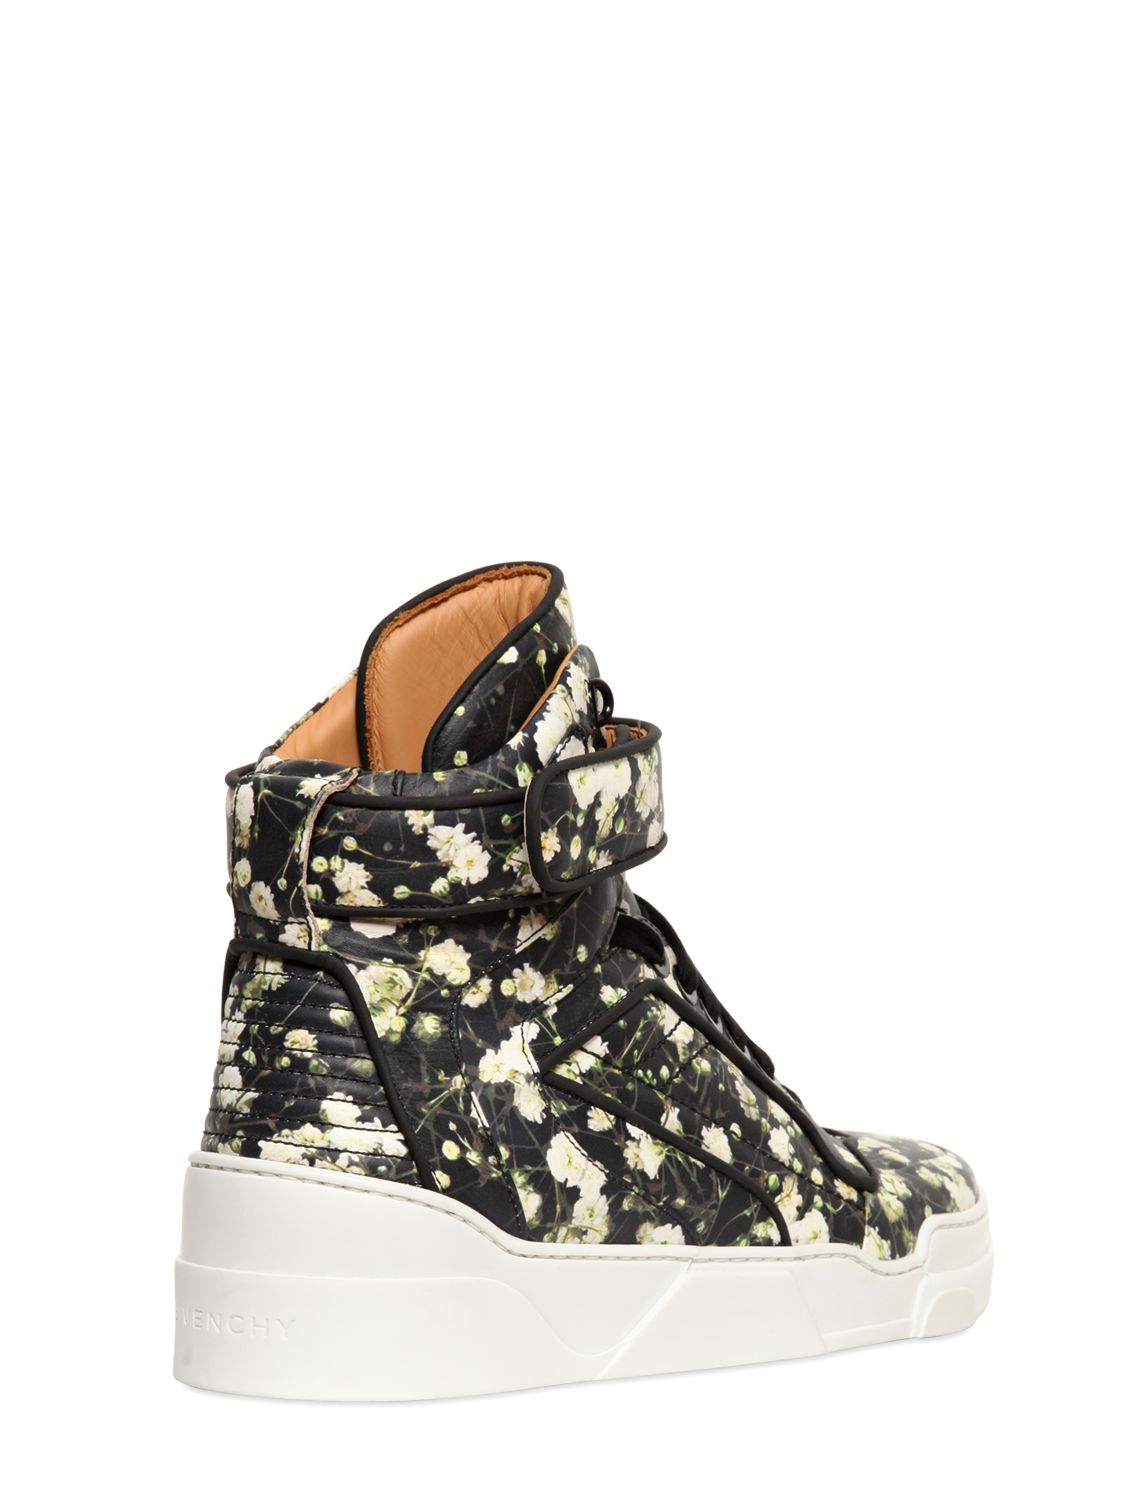 Lyst Givenchy Tyson Floral Leather High Top Sneakers In